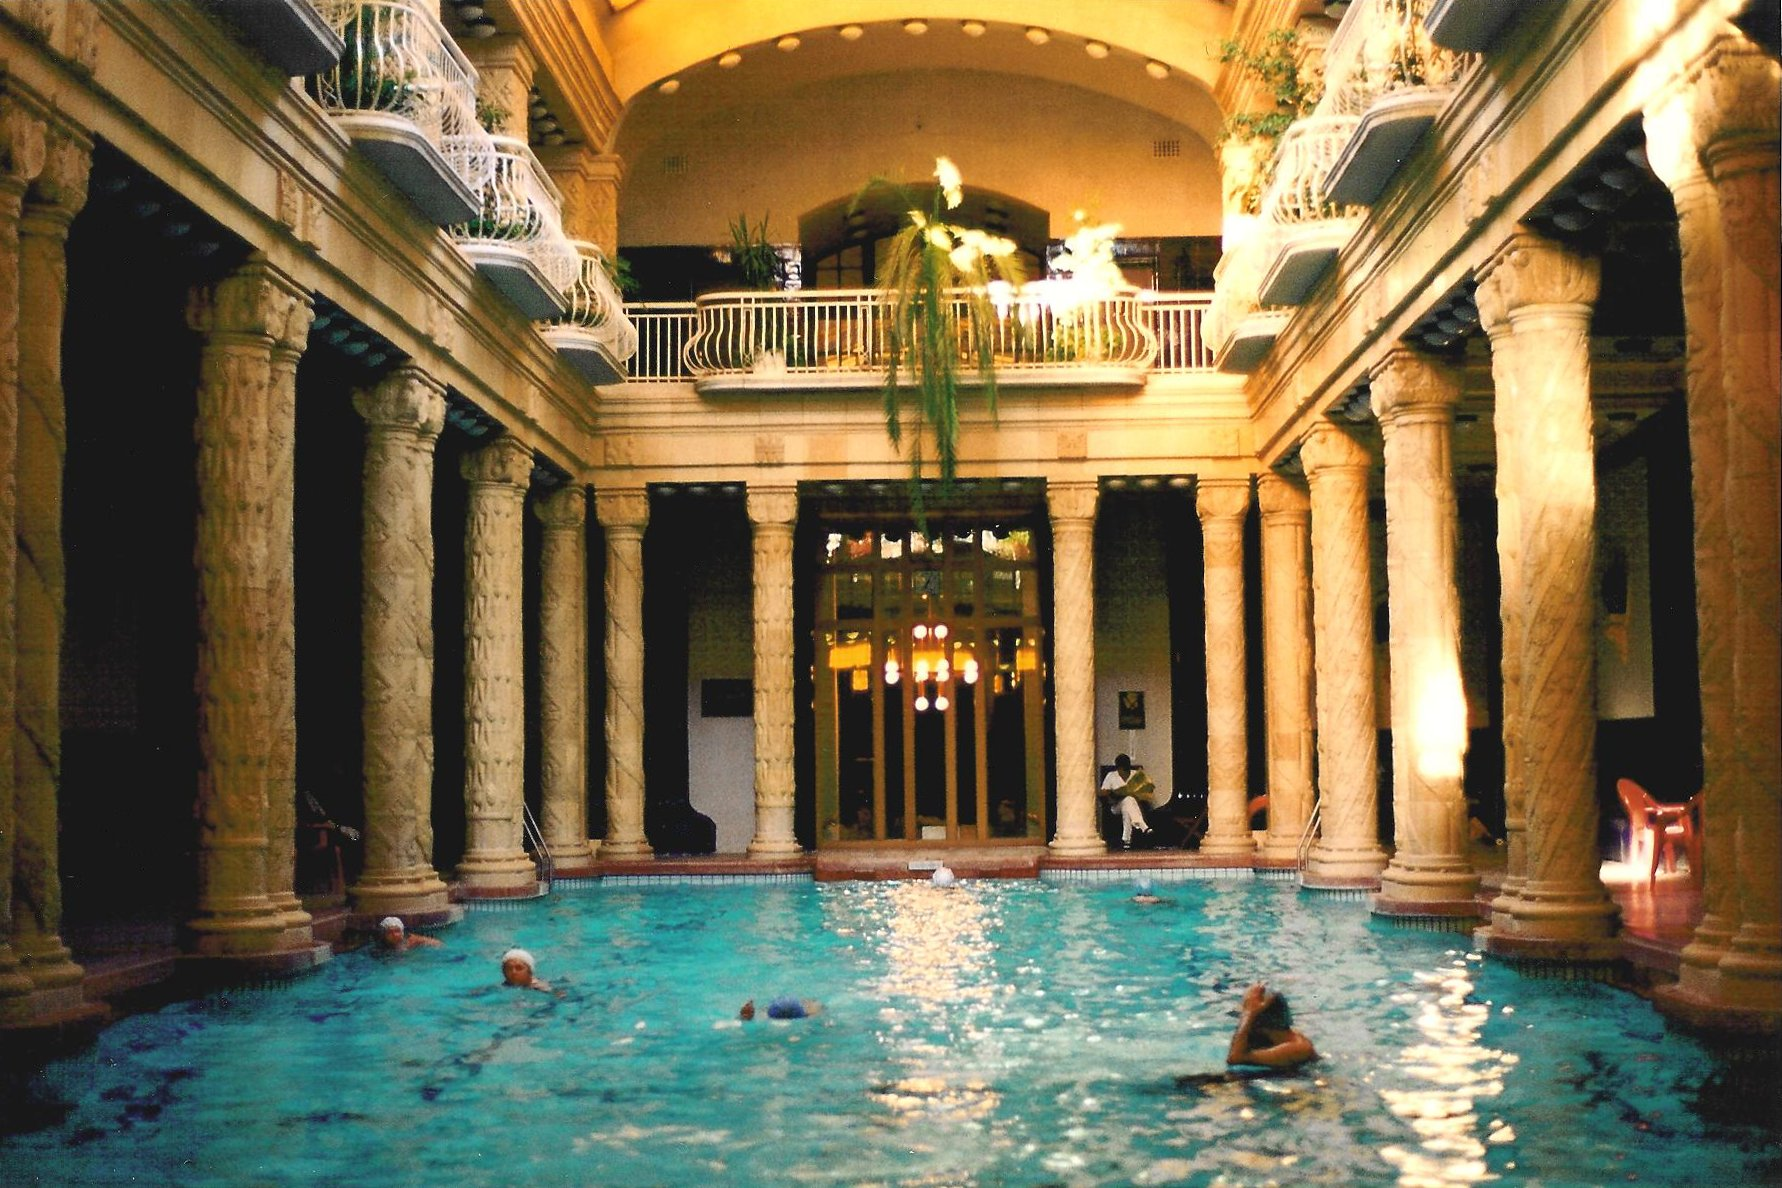 File:Budapest Gellert baths 01.jpg - Wikimedia Commons